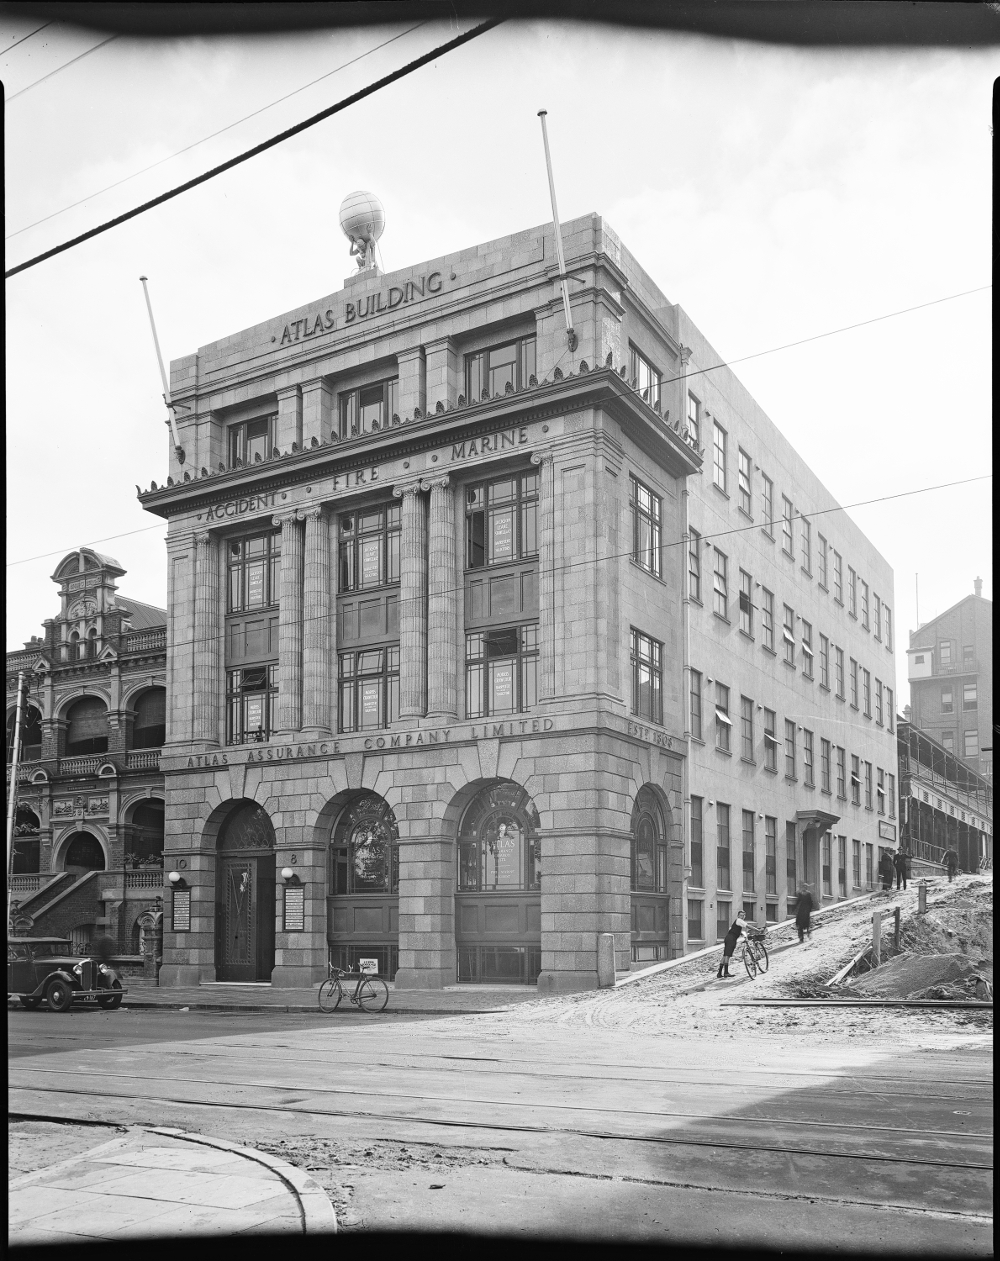 July 1931 Atlas Building State Library of Western Australia Image: SLWA 095430PD